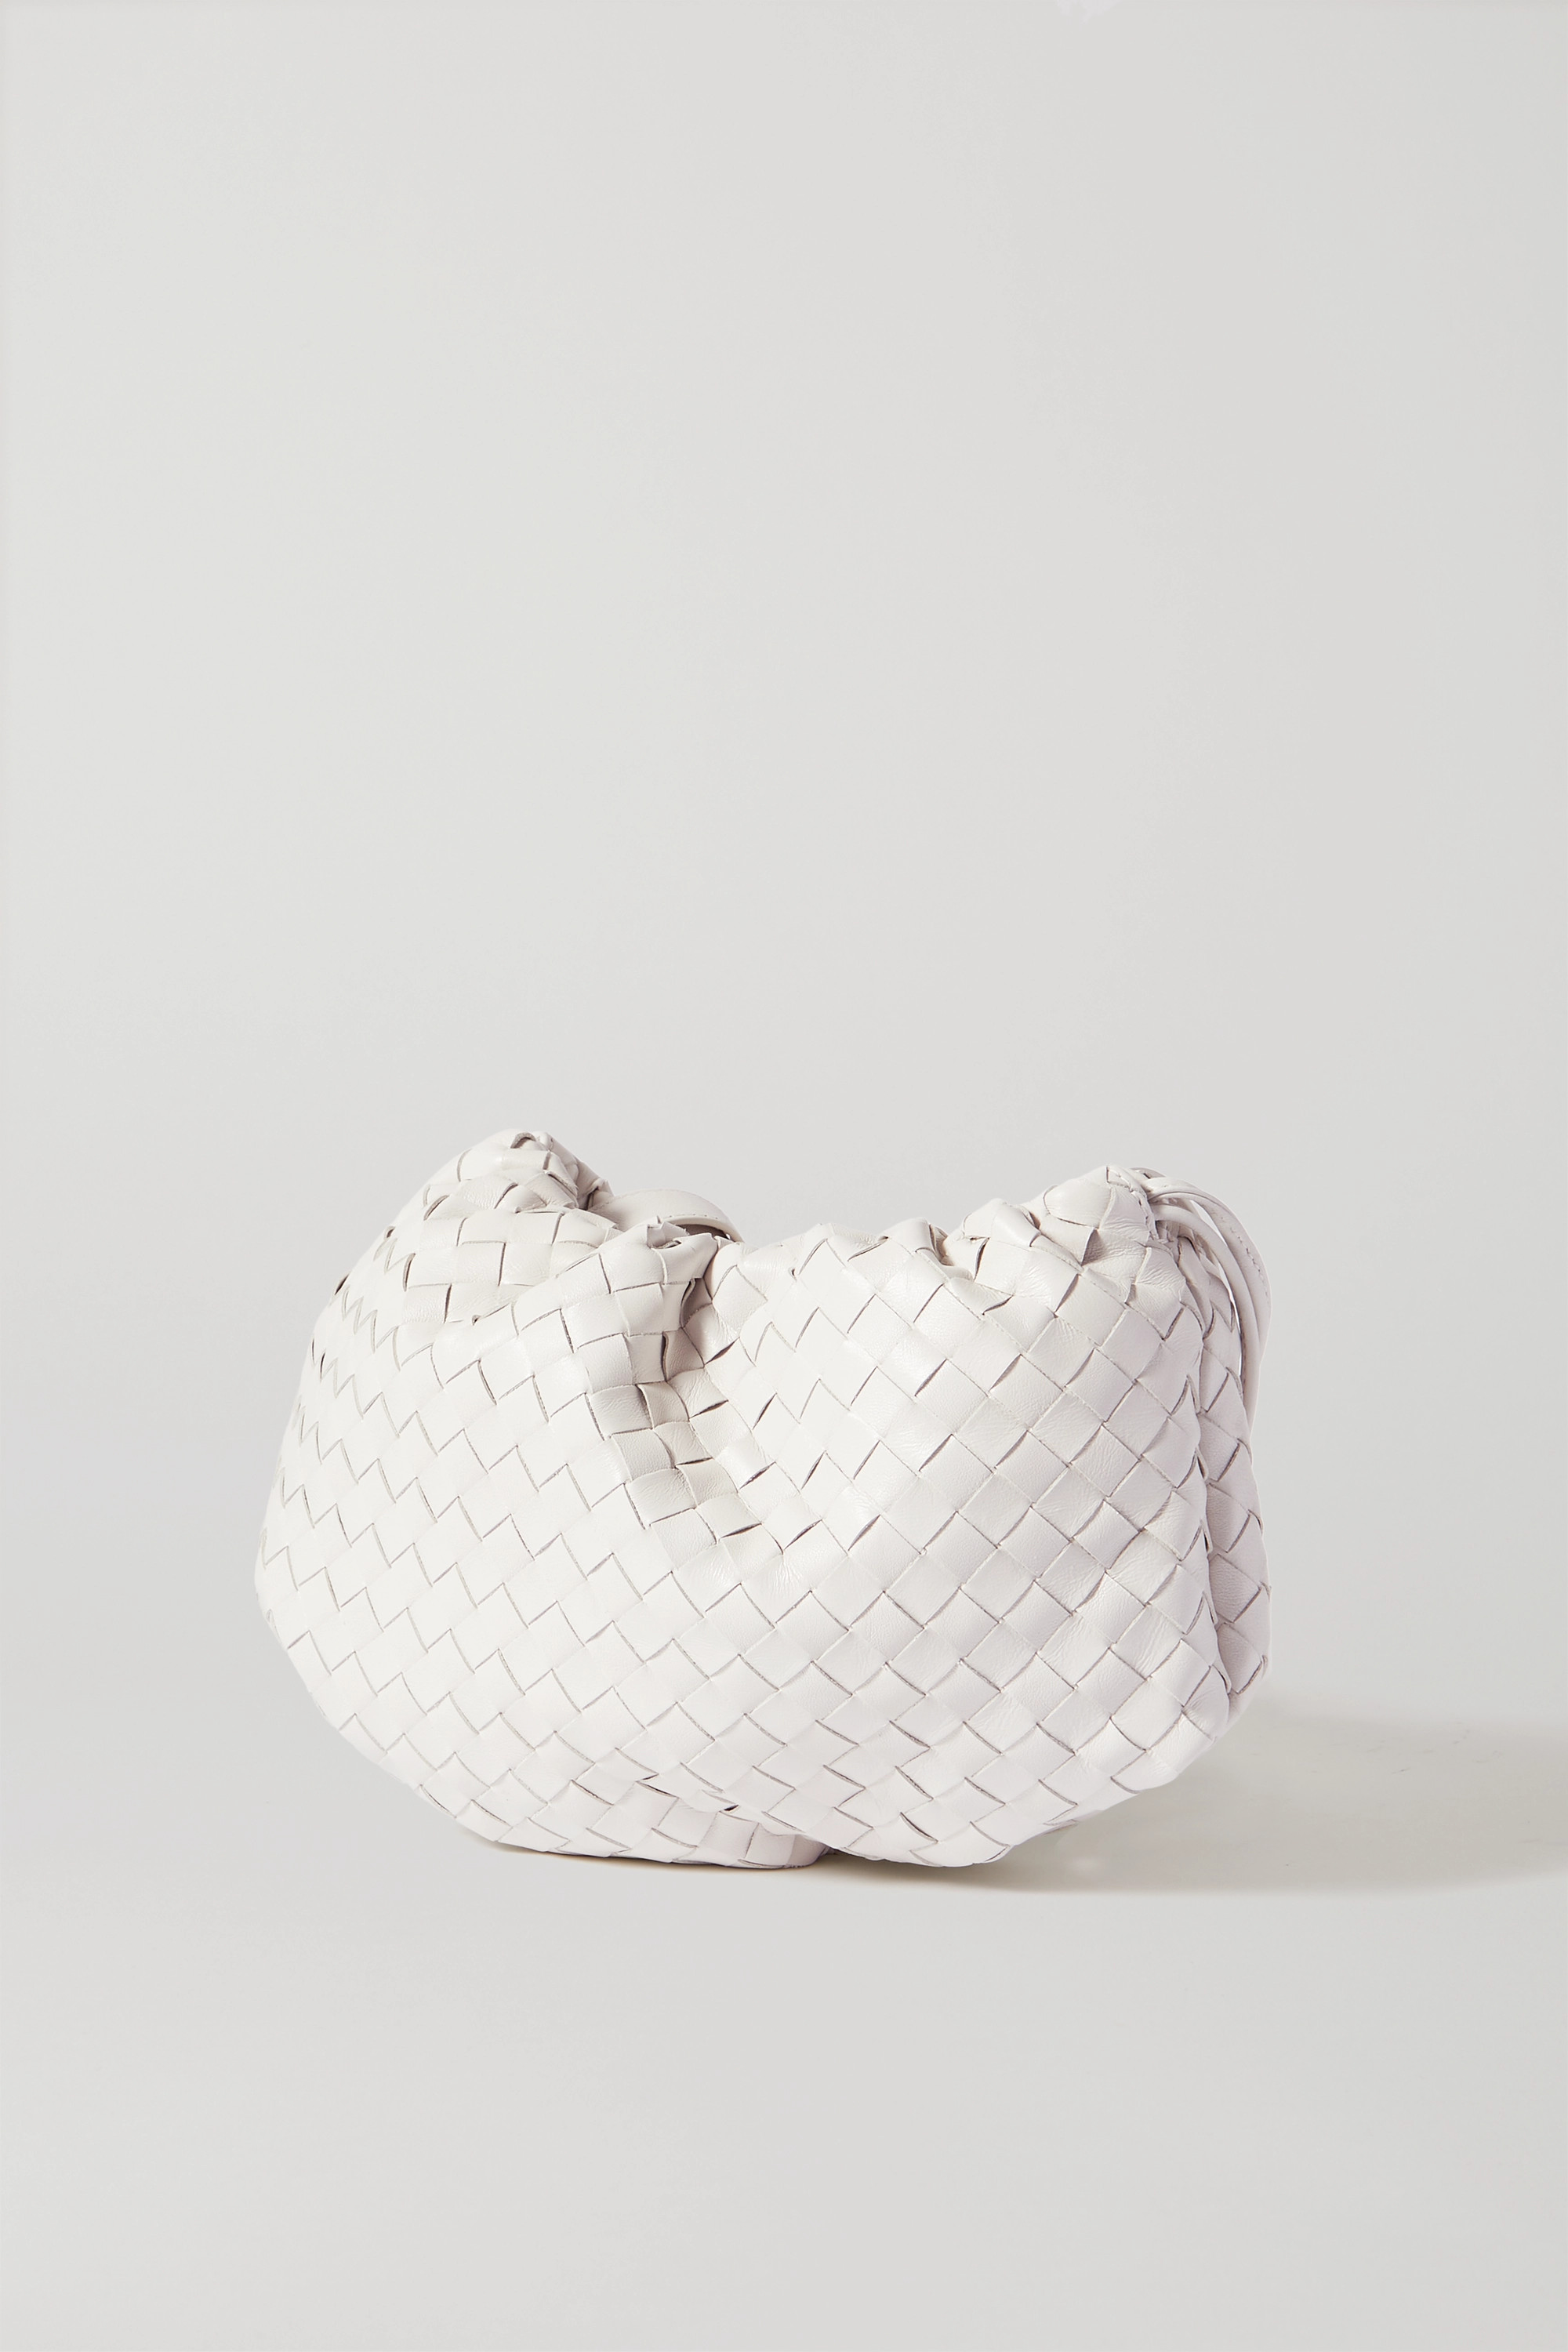 BOTTEGA VENETA The Small Bulb gathered intrecciato leather shoulder bag